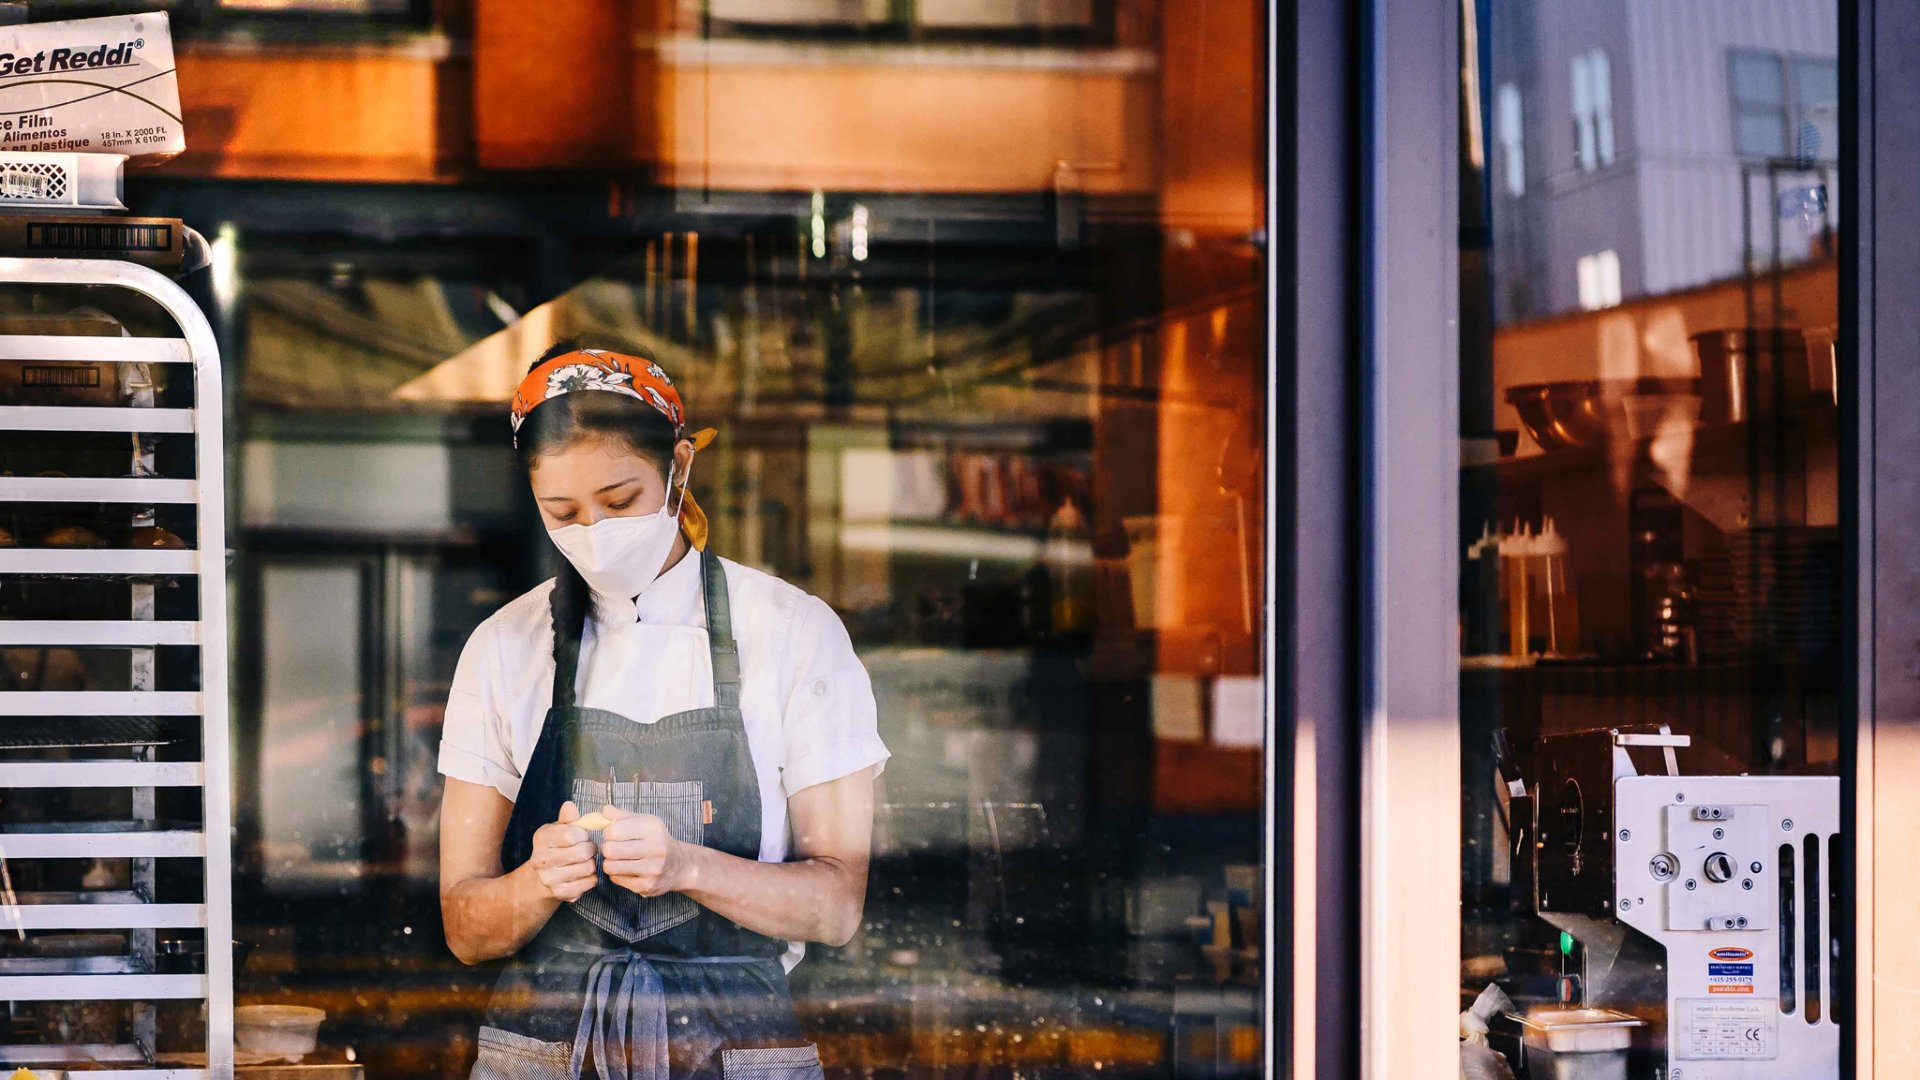 A worker wears a protective mask while preparing food at a restaurant in downtown Memphis.